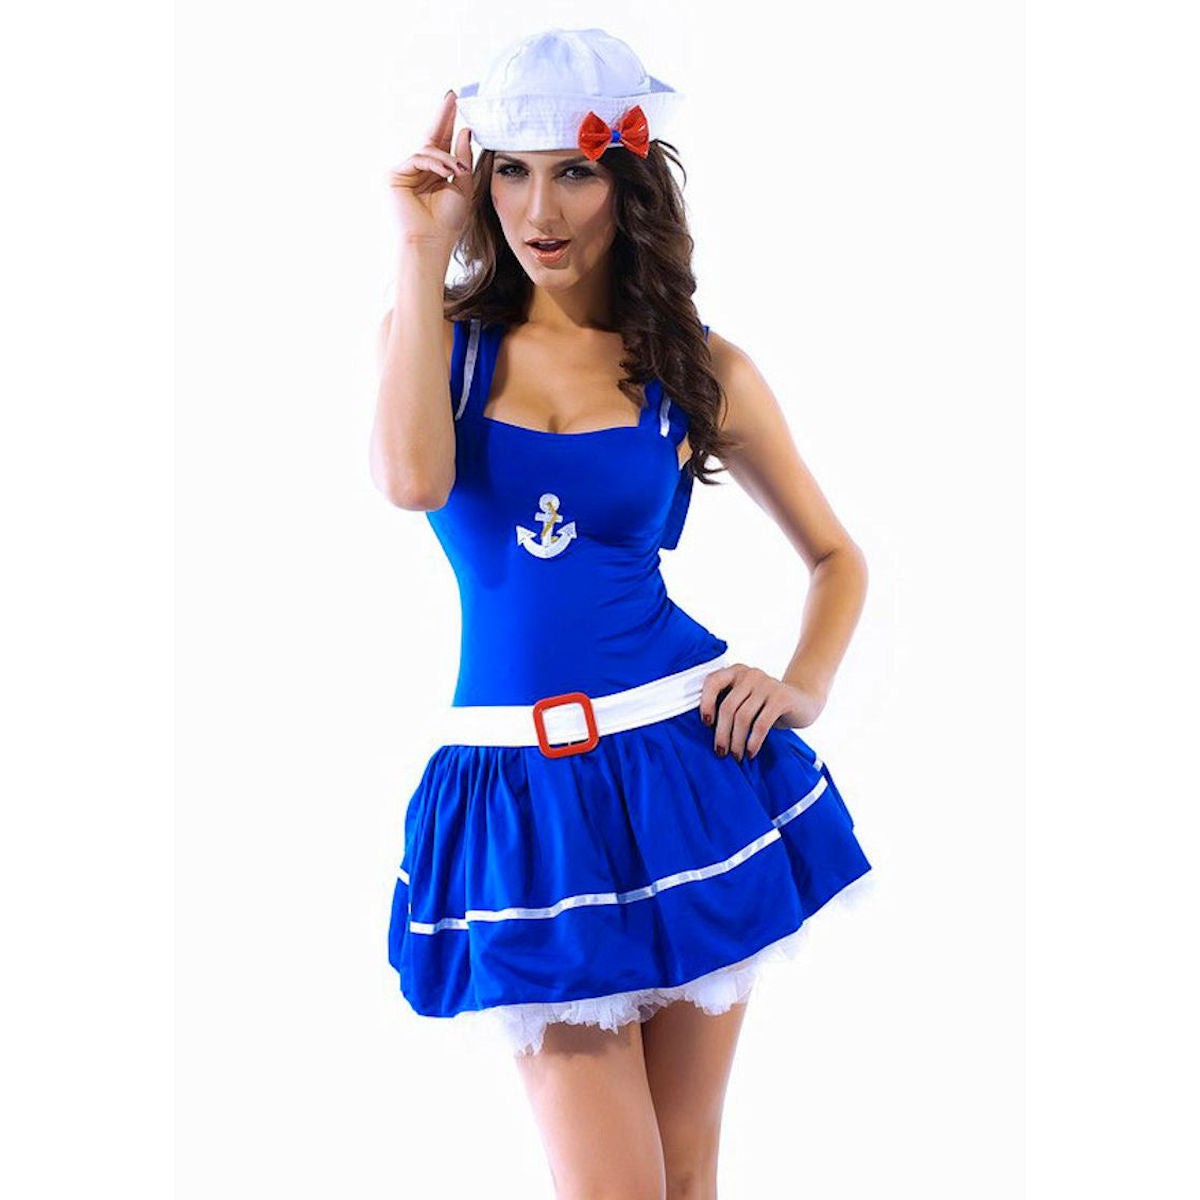 Sailor Blue Costume Women's fancy dress costume with Hat one size fits 8-12